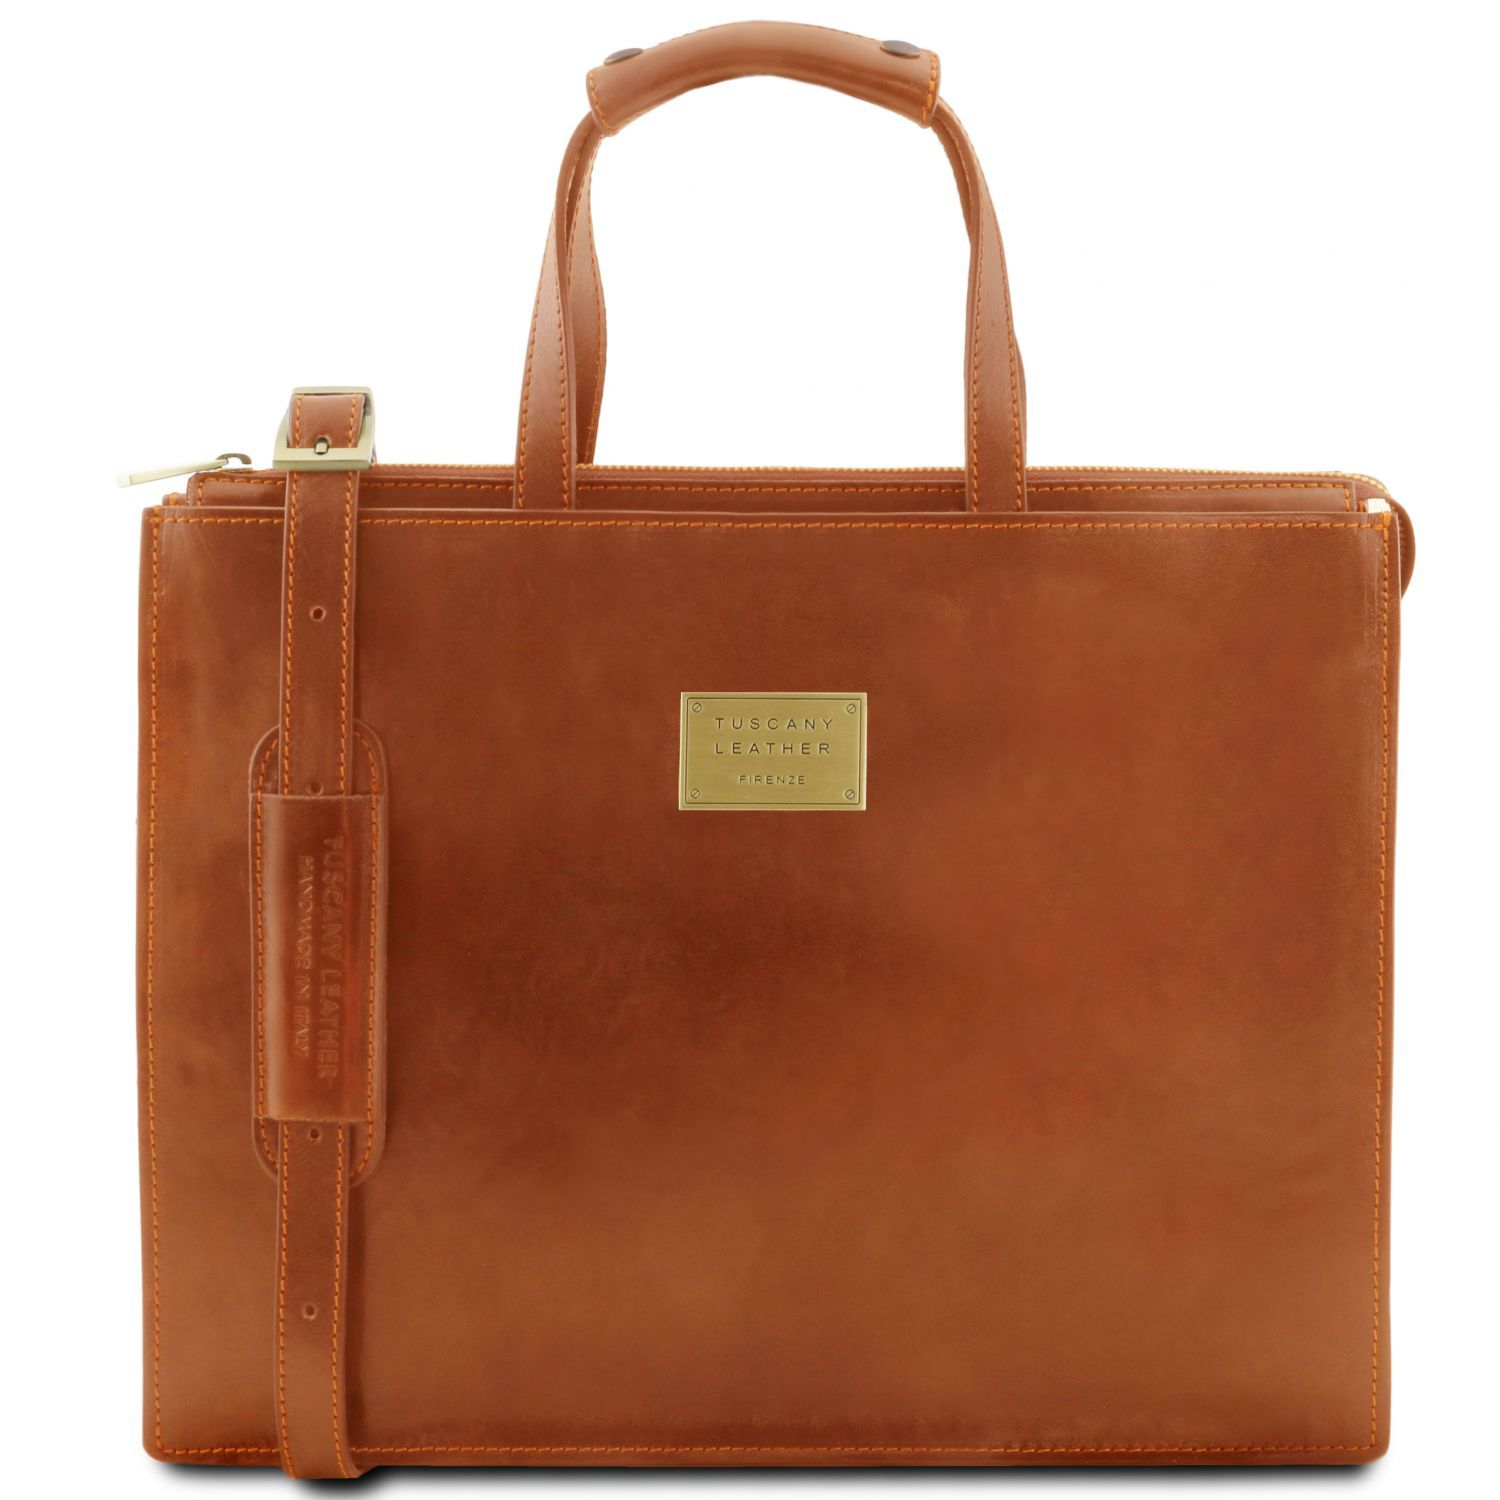 Palermo - Leather briefcase 3 compartments for women (TL141343) - Leather briefcases | DILUSSOBAGS